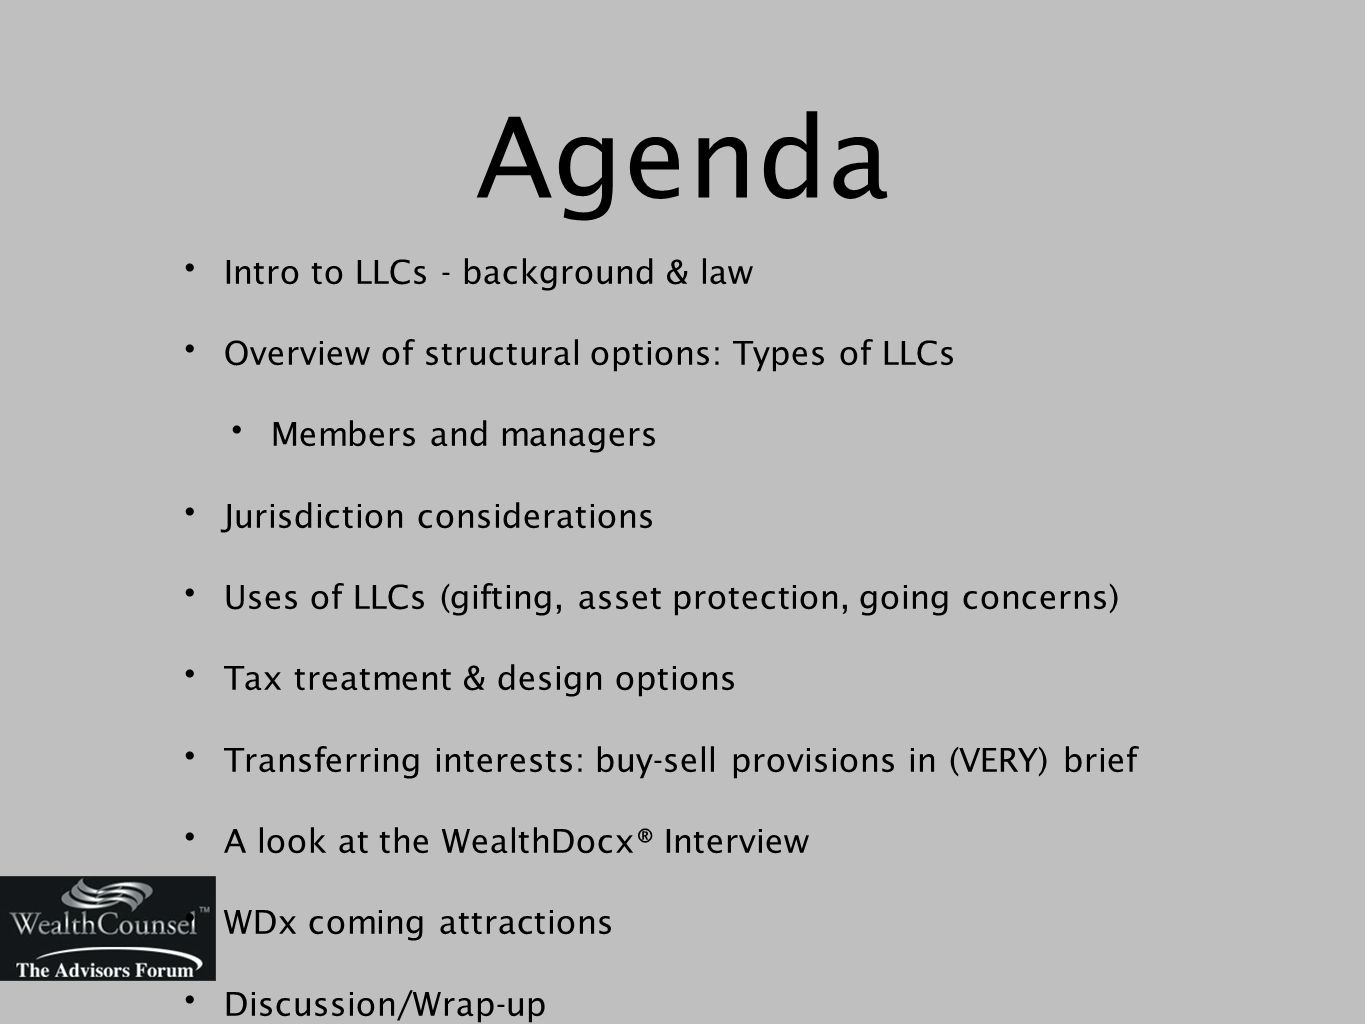 Agenda Intro to LLCs - background & law Overview of structural options: Types of LLCs Members and managers Jurisdiction considerations Uses of LLCs (gifting, asset protection, going concerns) Tax treatment & design options Transferring interests: buy-sell provisions in (VERY) brief A look at the WealthDocx® Interview WDx coming attractions Discussion/Wrap-up